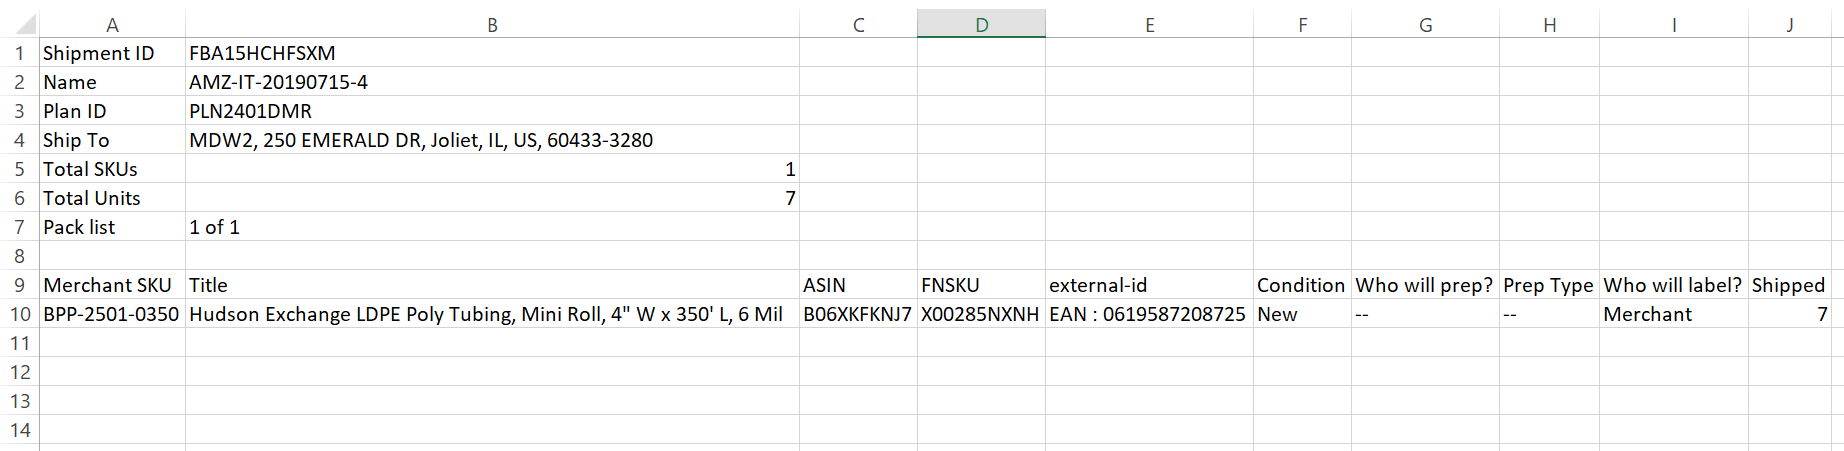 Use VBA to Autofill a Row until the end of the number of data in ...